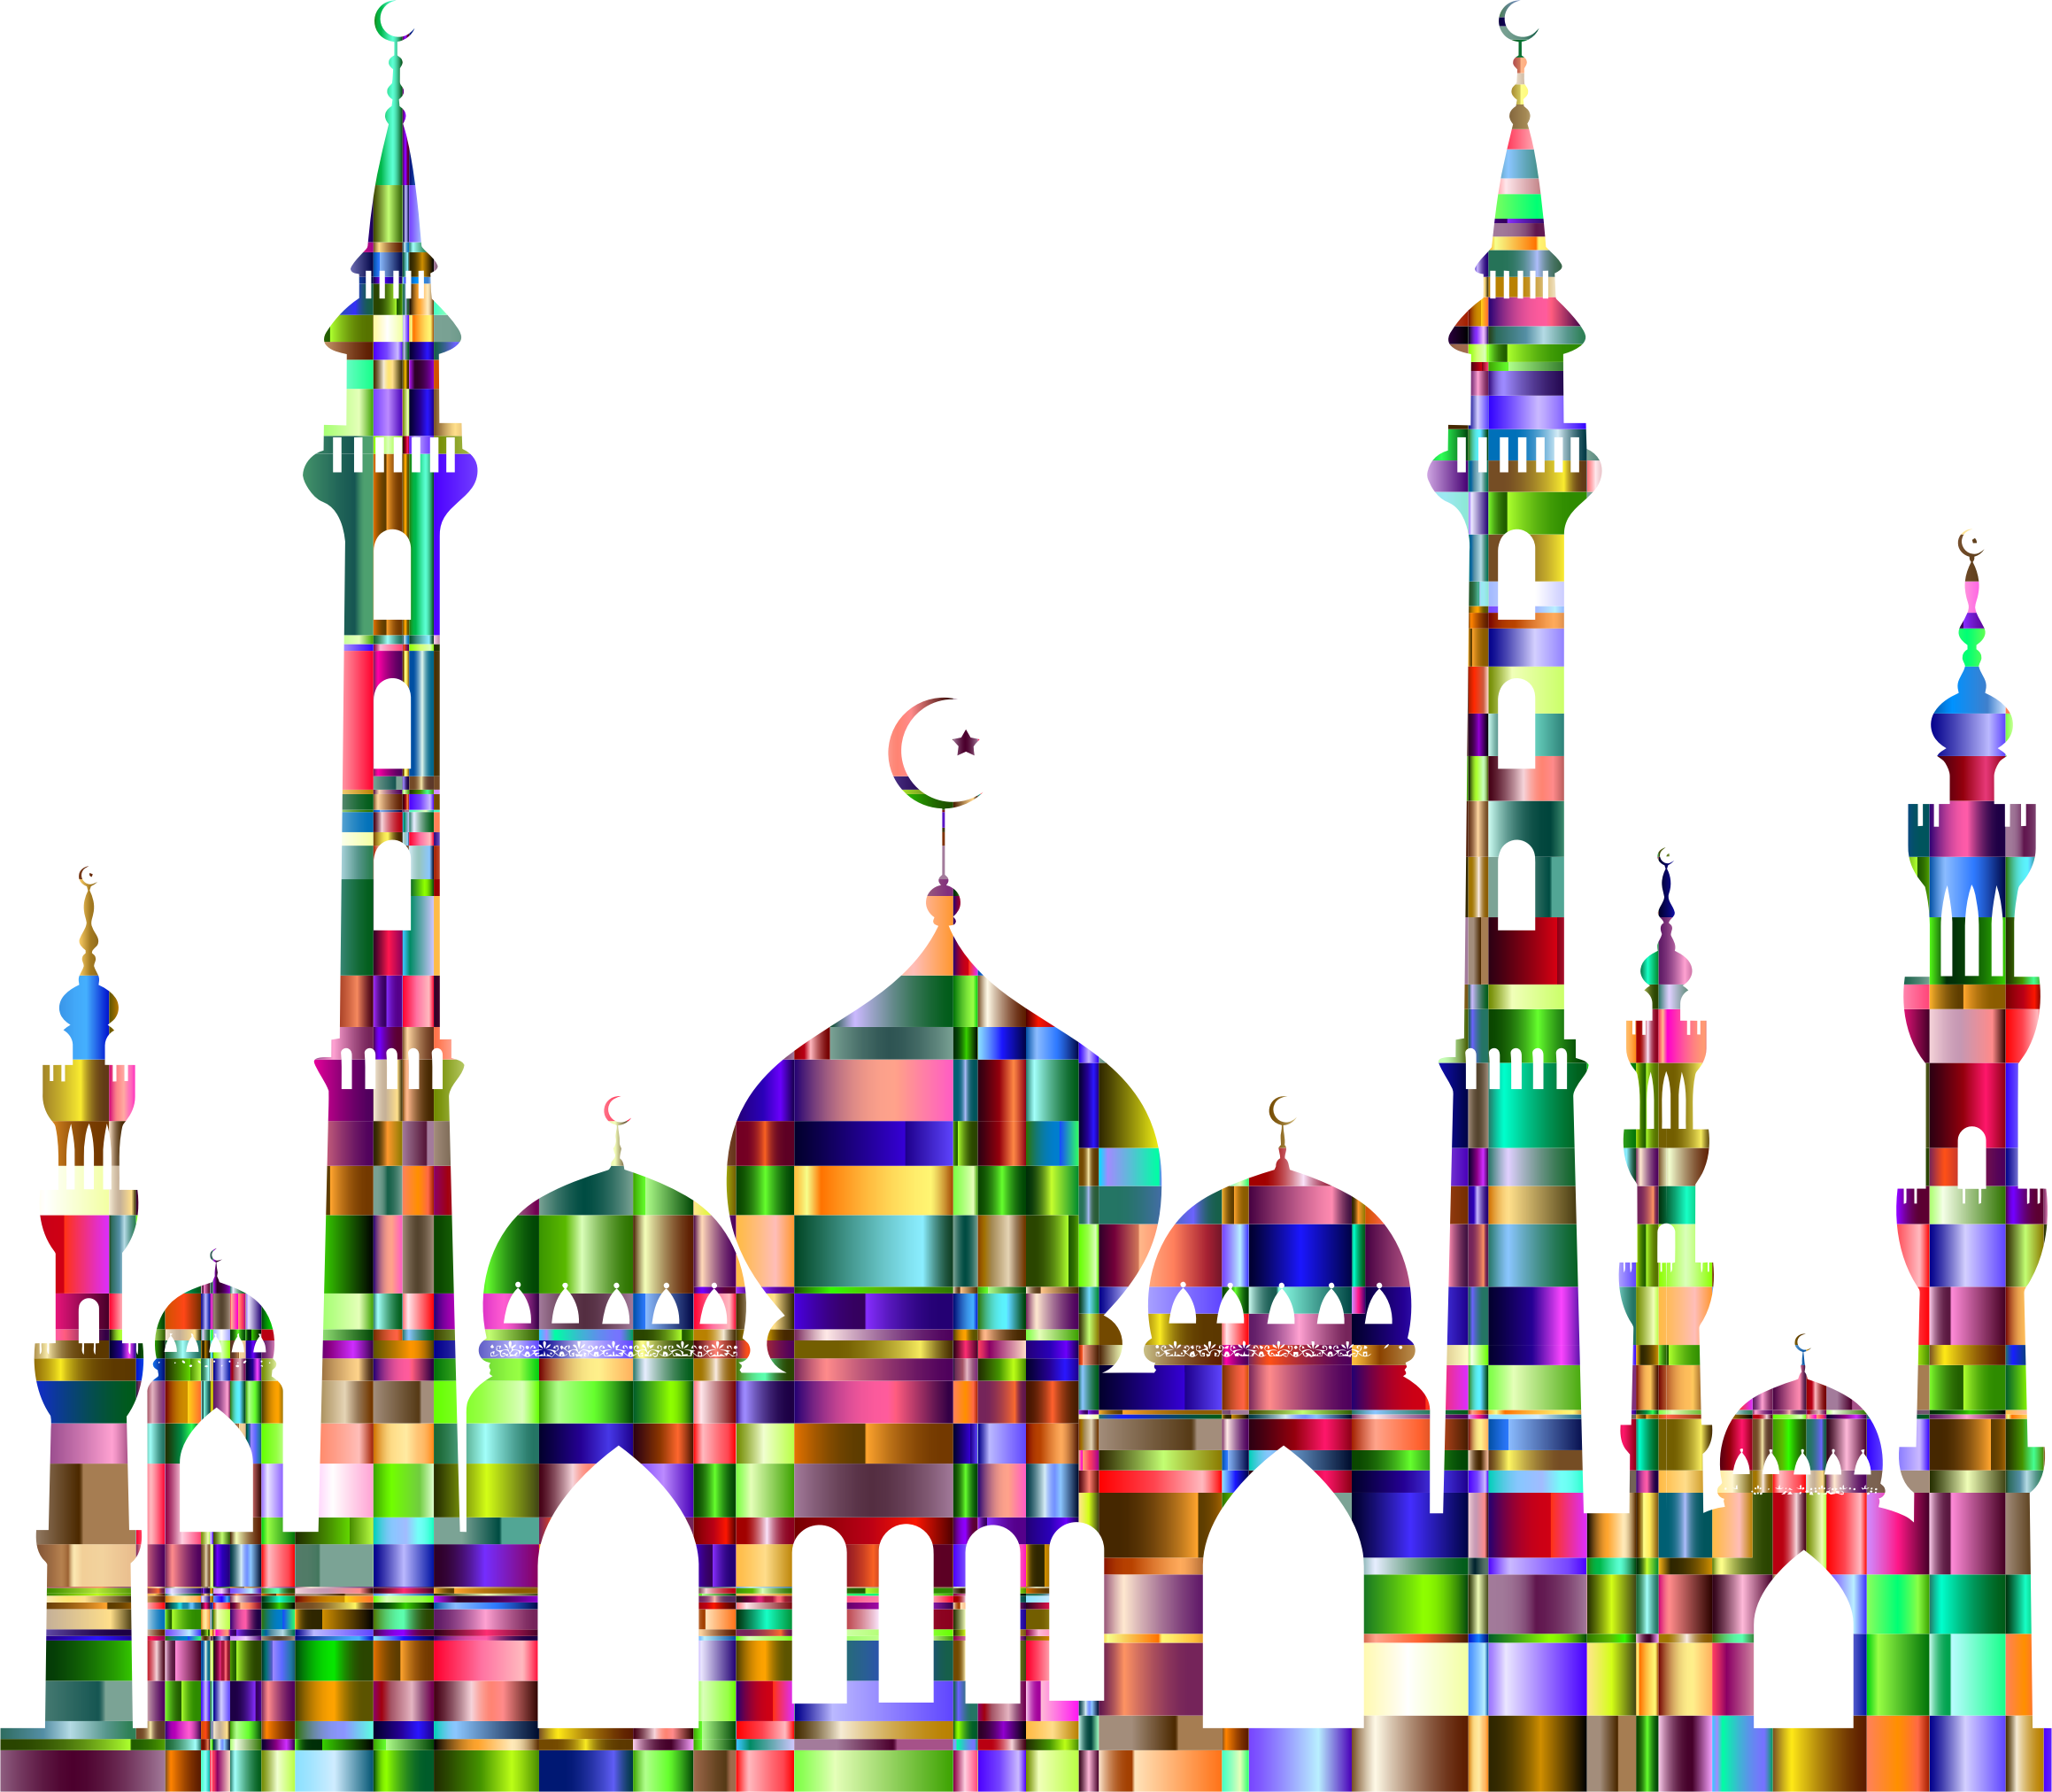 Checkered Chromatic Mosque 2 by GDJ